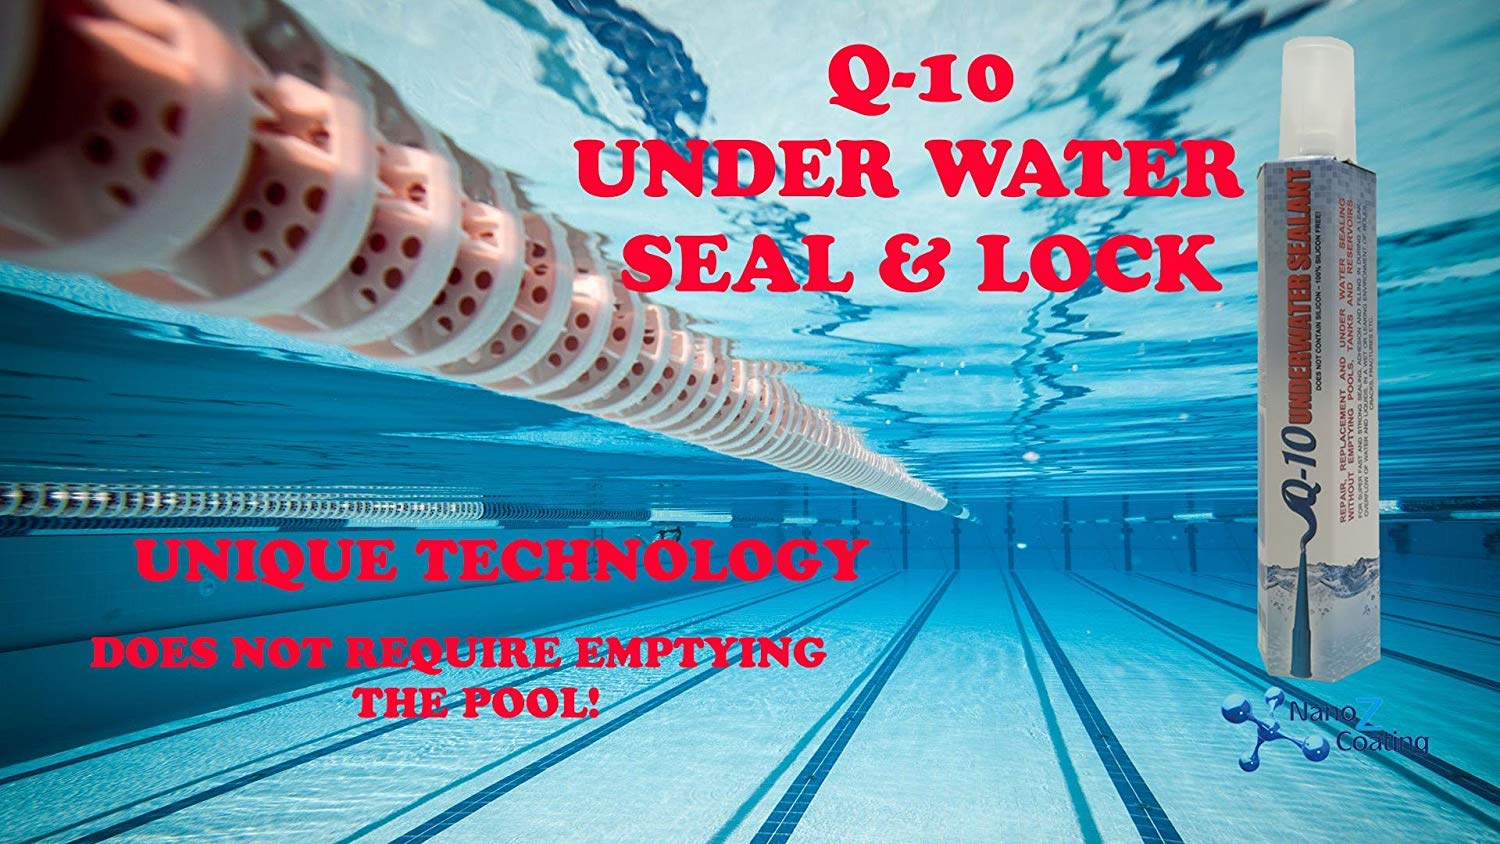 Nano Tech Q-10 Underwater Seal & Lock - Does Not Require Emptying The Pool,  Reservoir or Tank  Leak Sealant Repair and Adhesive to Fix Cracks and Stop